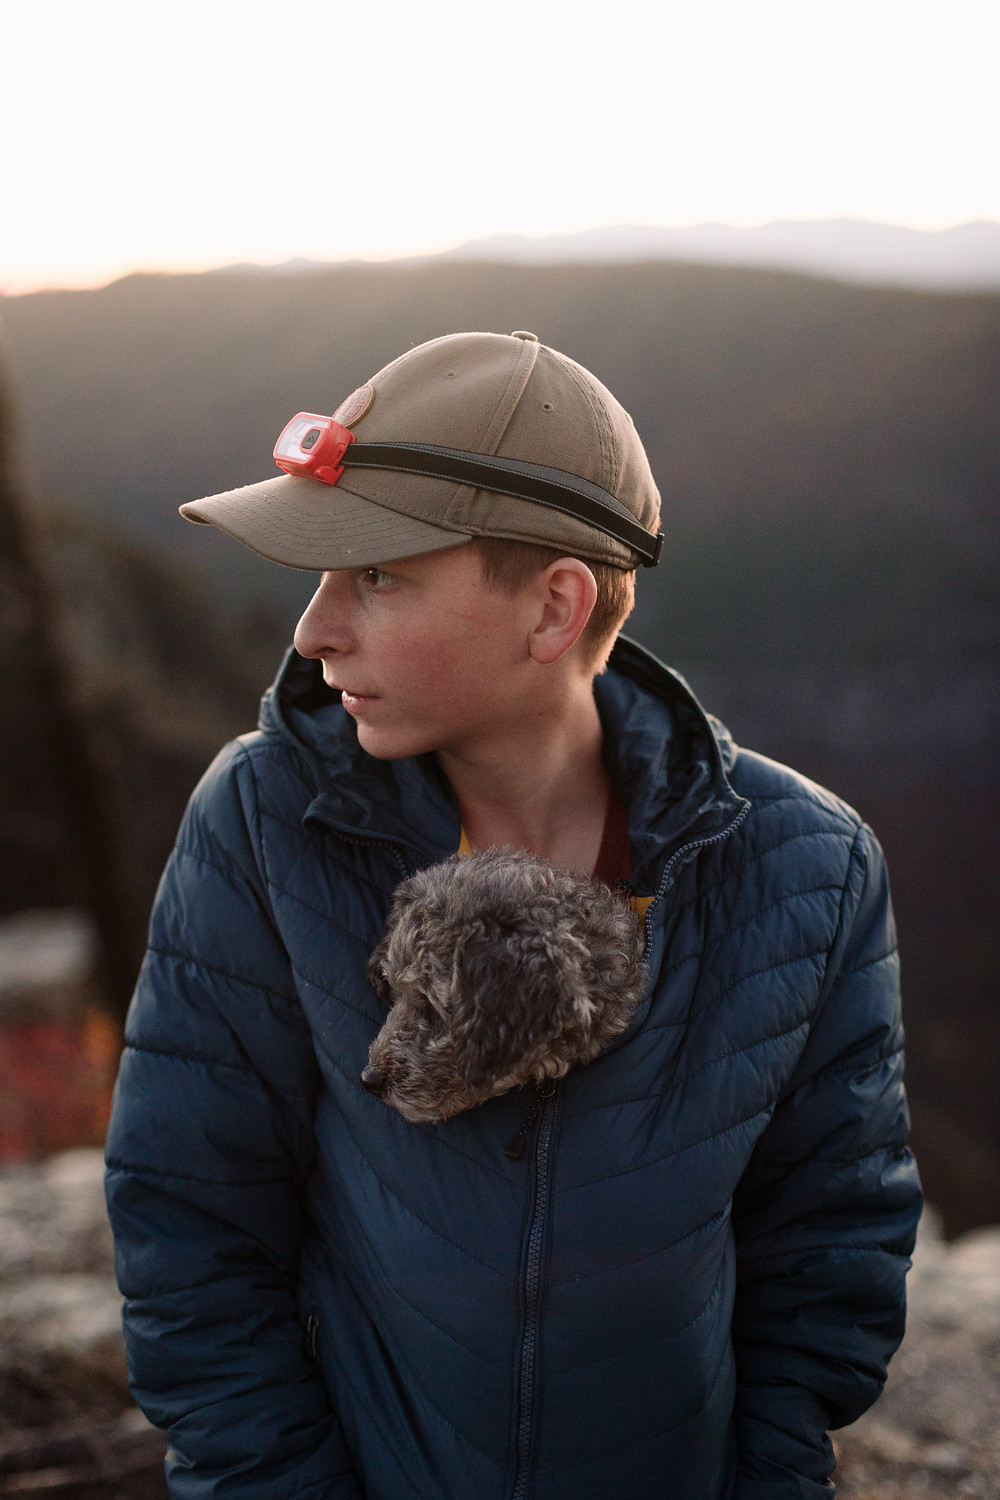 Camping with dogs, miniature poodle in your coat